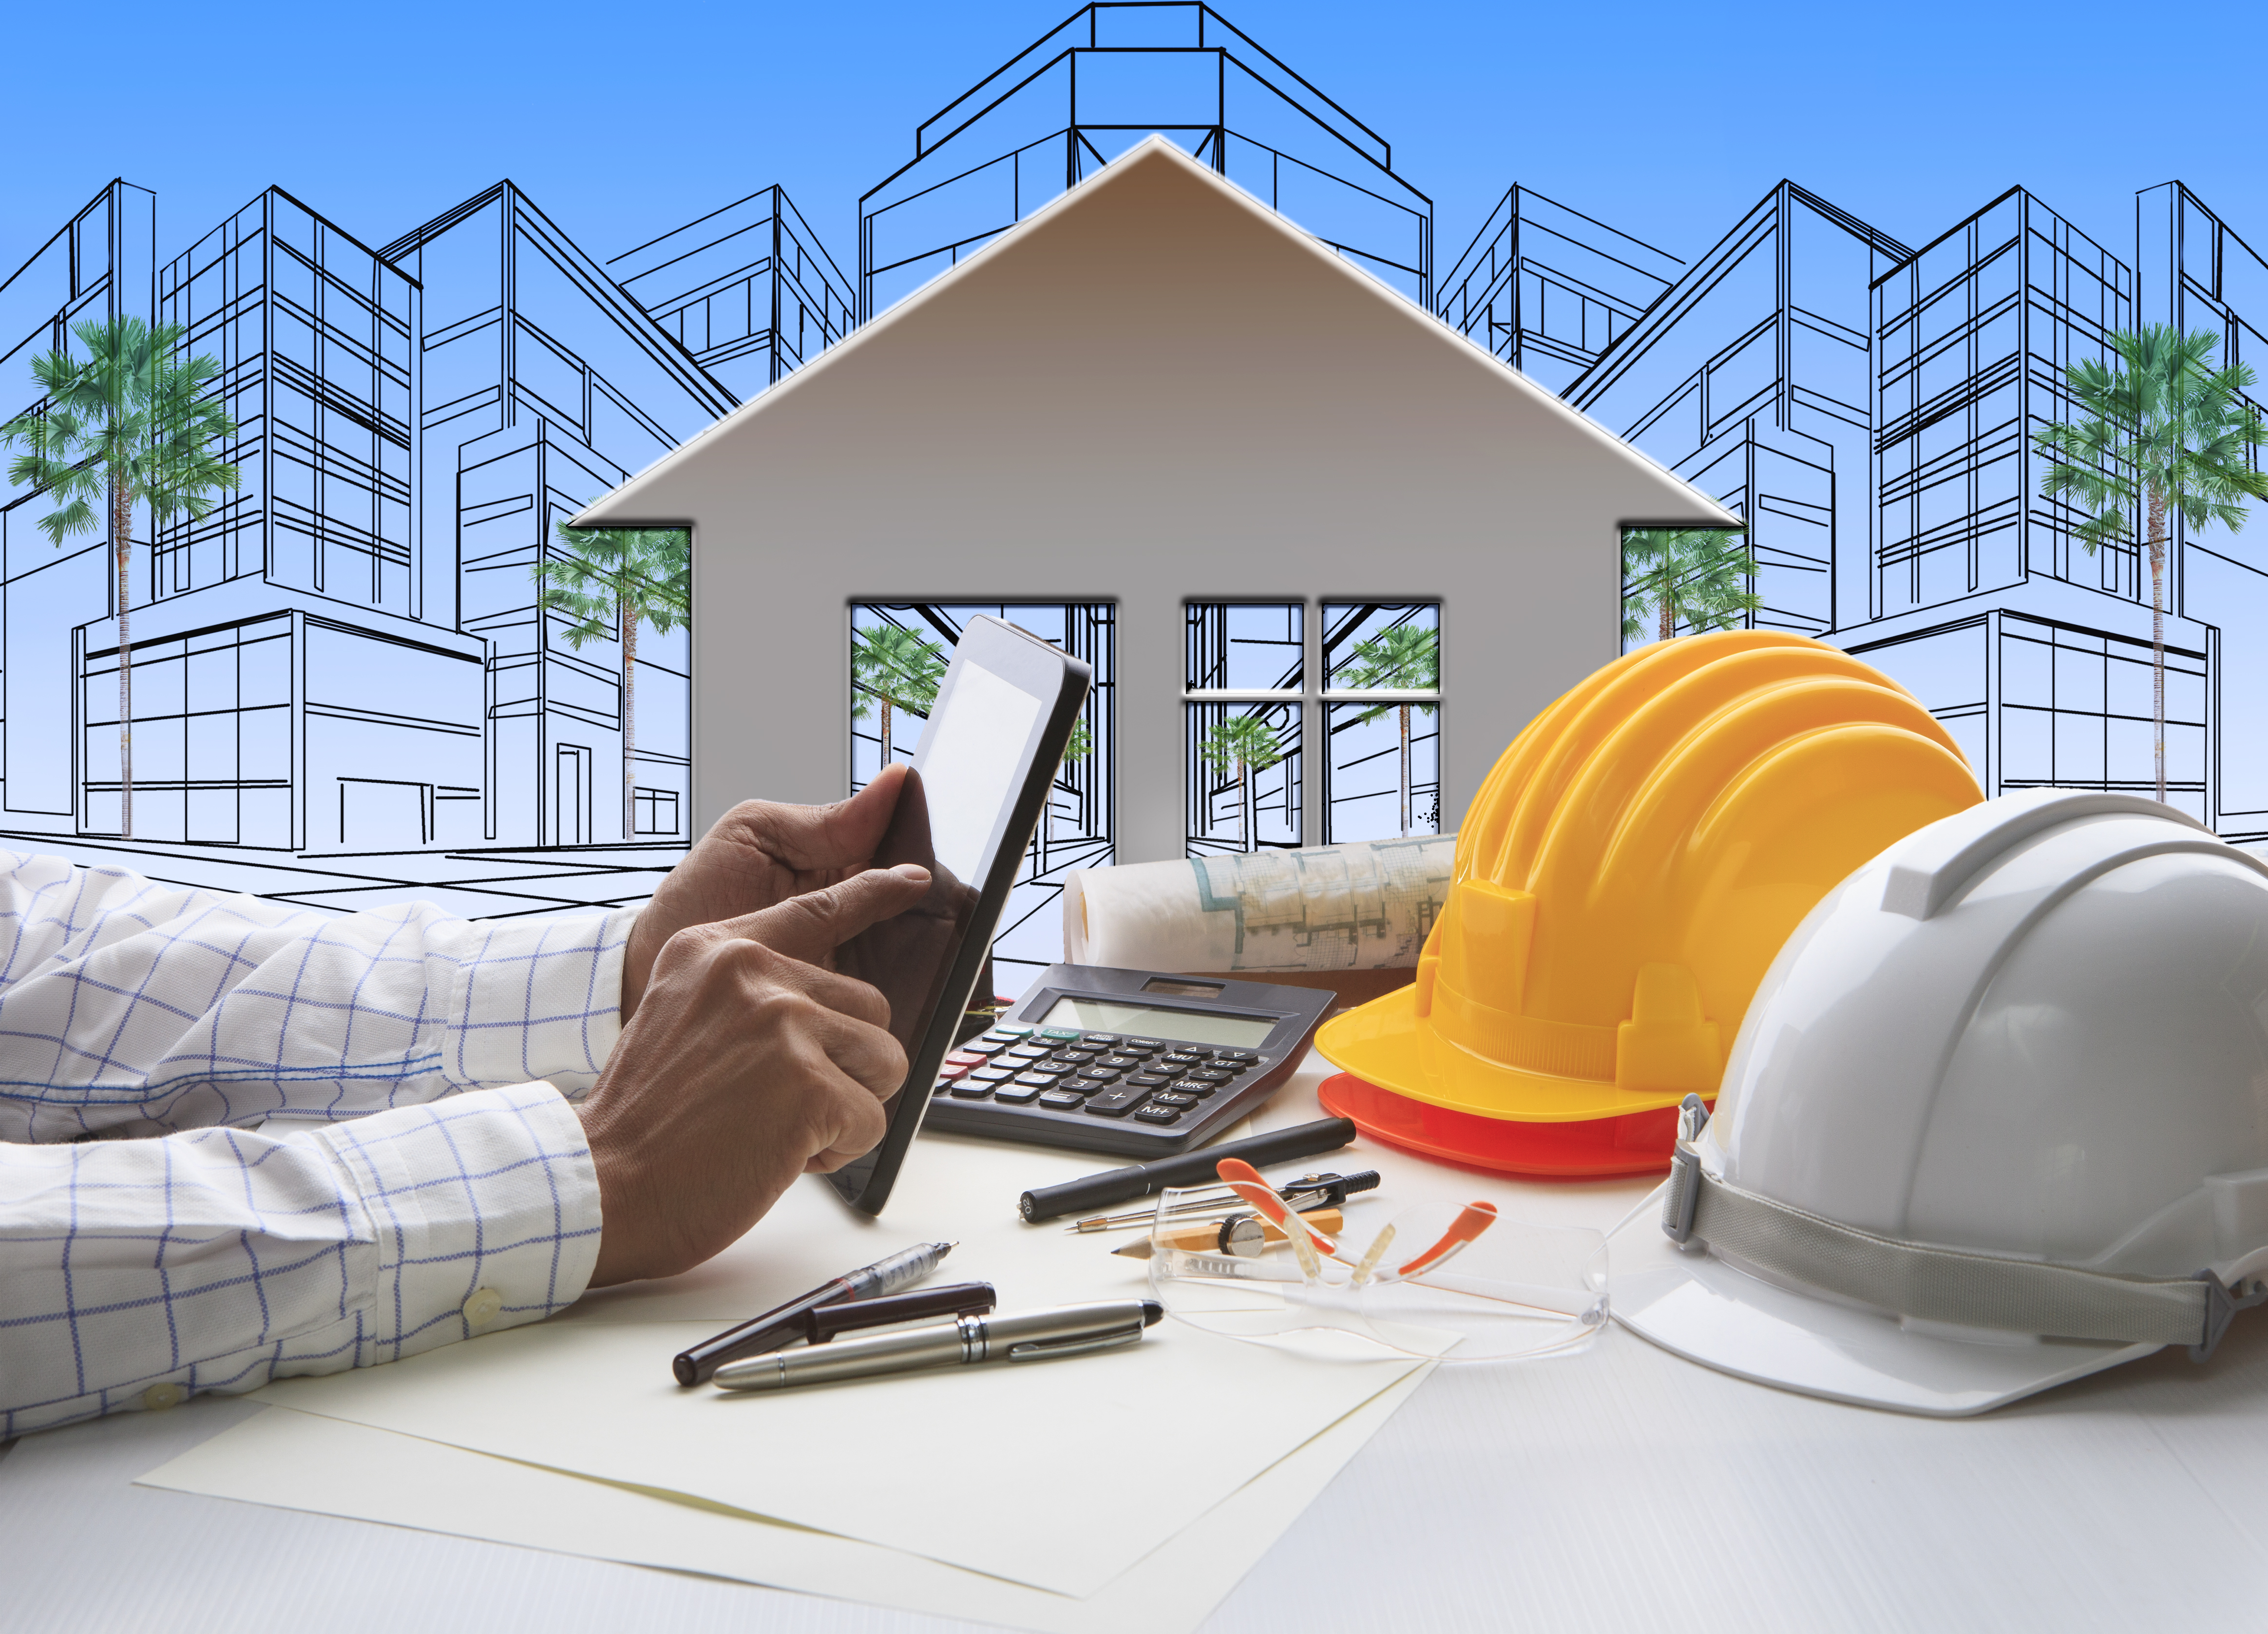 Image of a property investor using a tablet and over a table with builder helmets and blue prints - represents that Another great Property Development Tip is to be sure to find quality builders